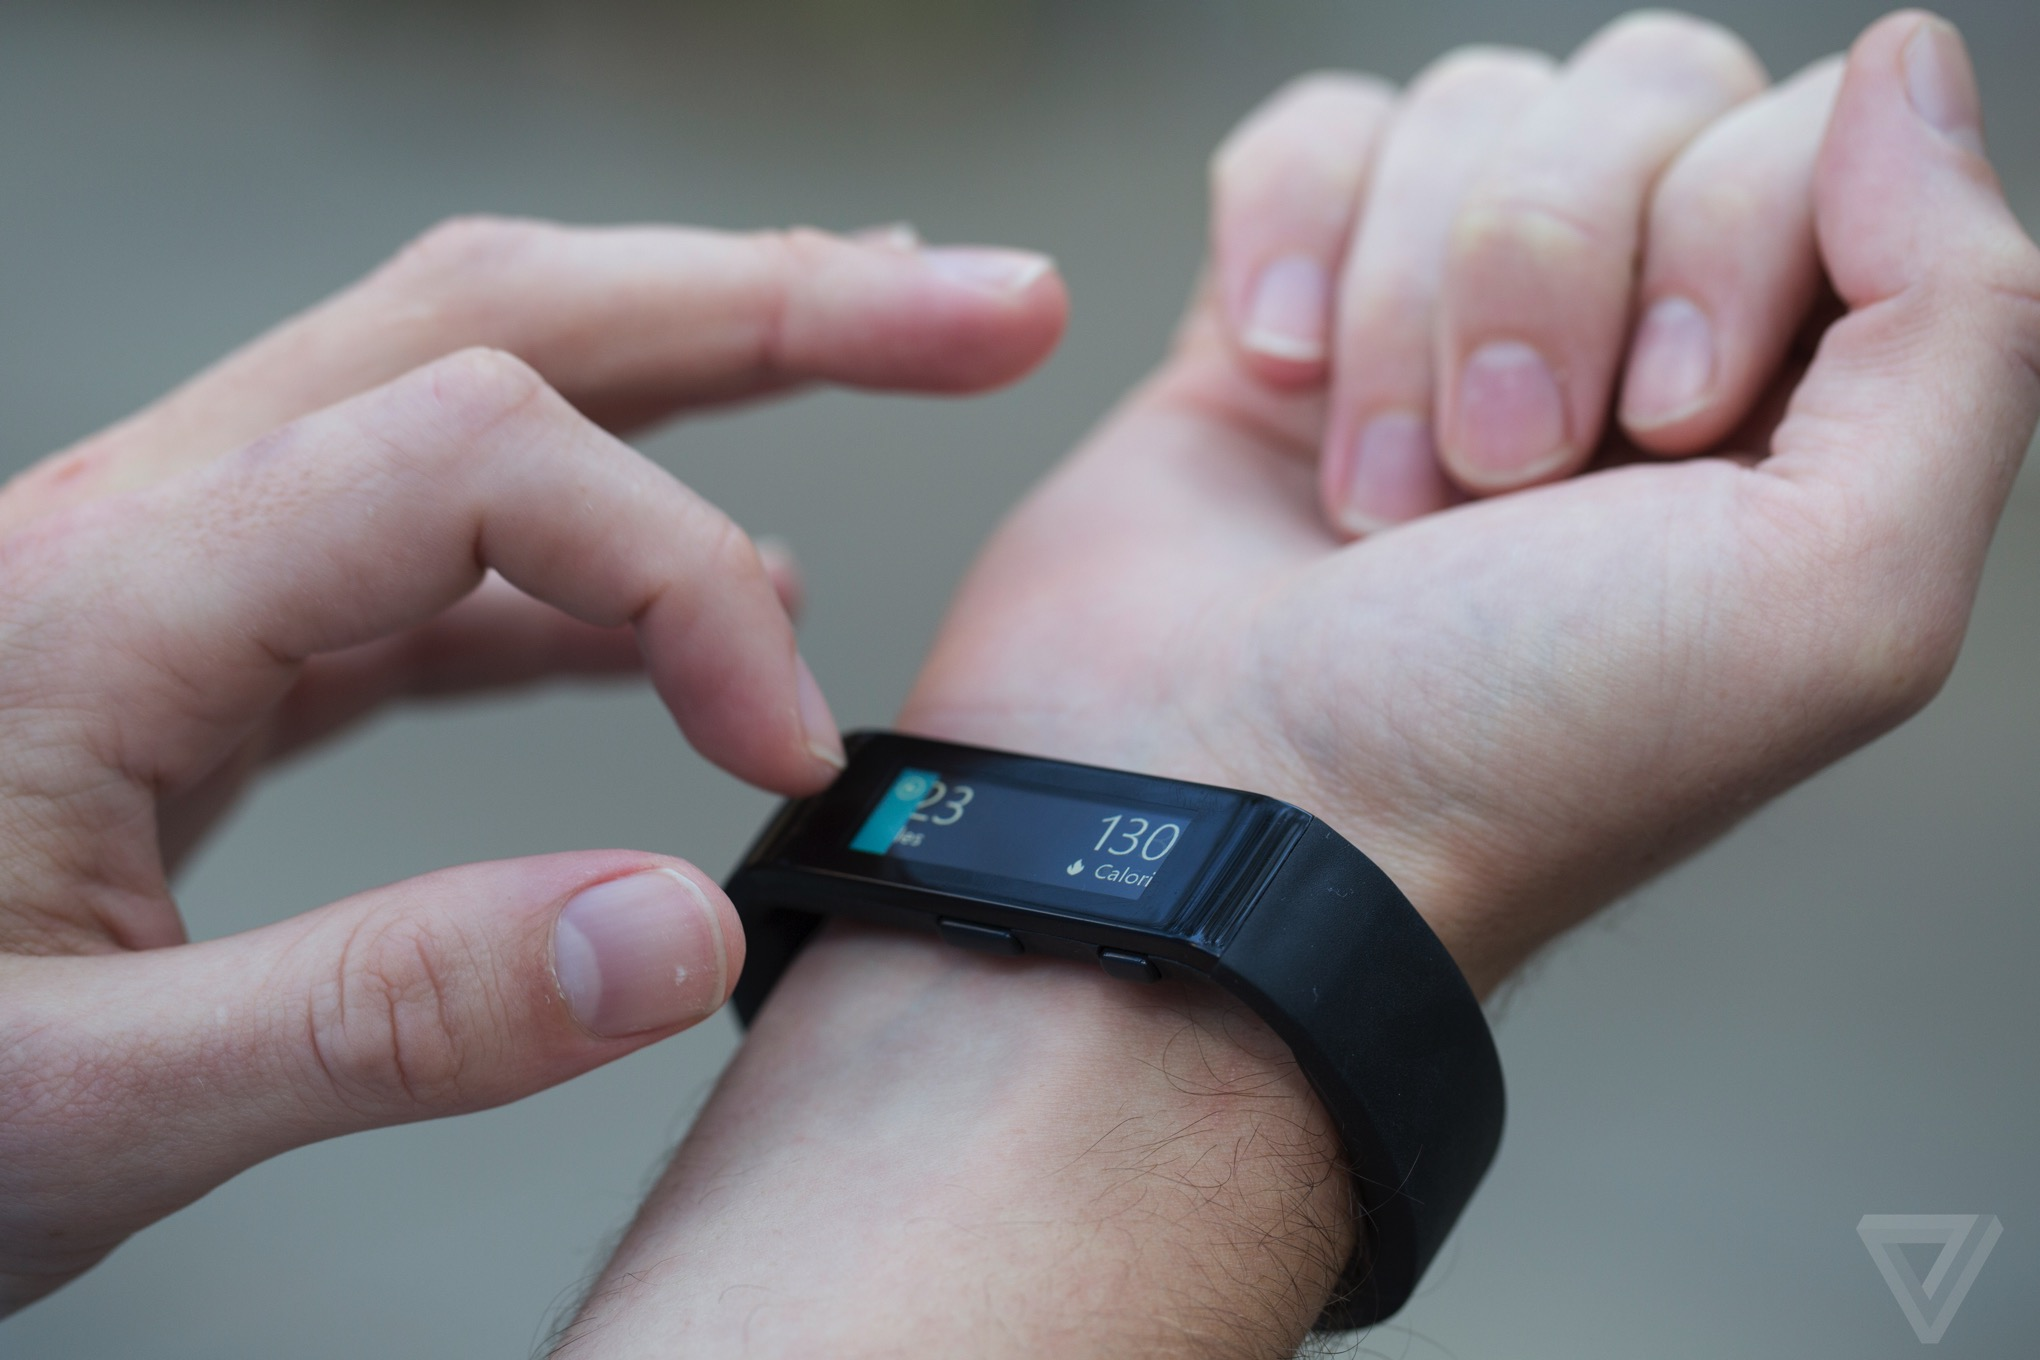 Microsoft Likely Discontinuing Microsoft Band Wearable Device